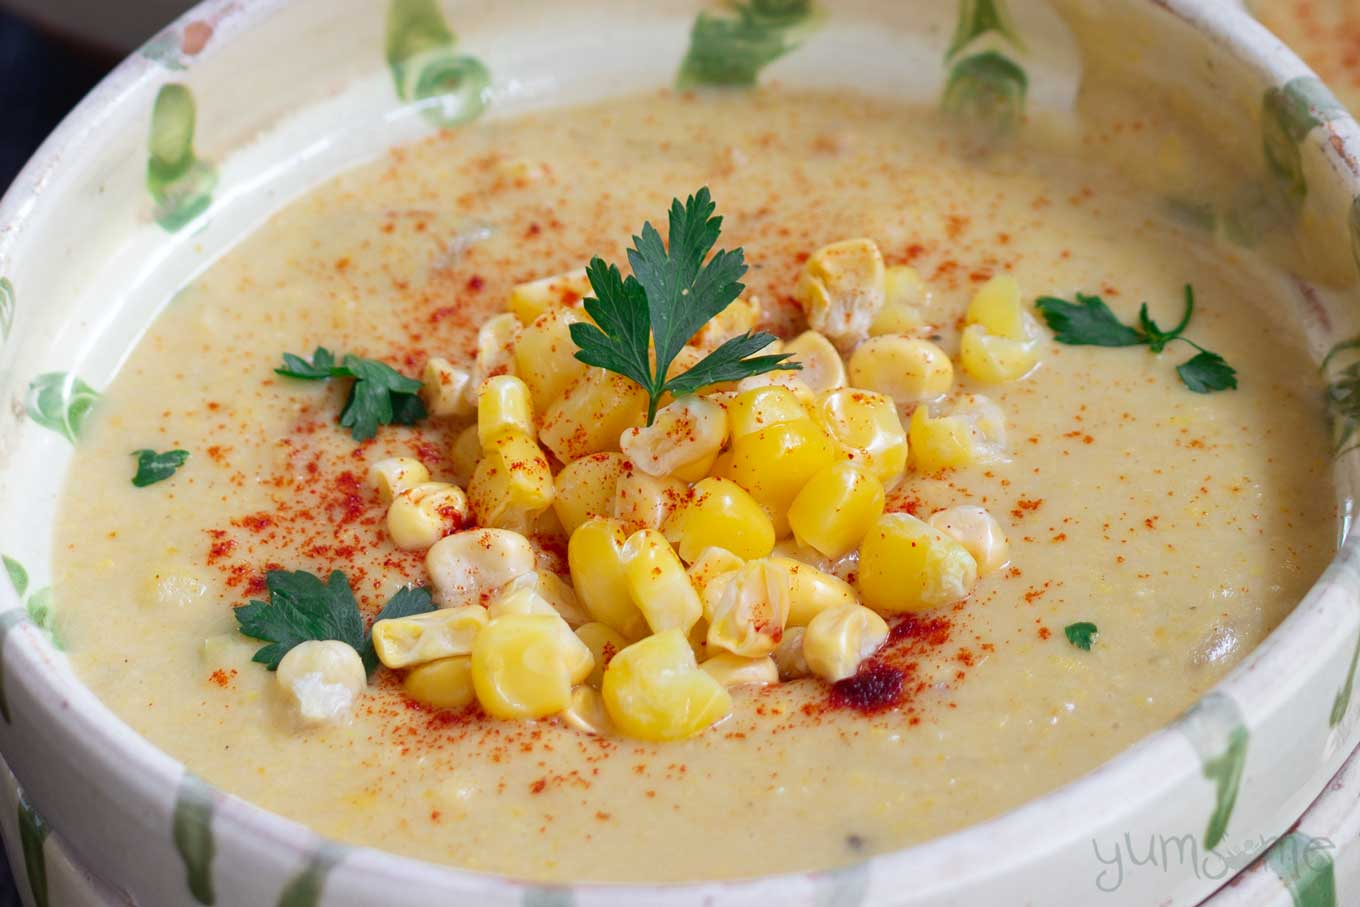 A bowl of vegan sweetcorn chowder with a pile of sweetcorn on top, and garnished with parsley.